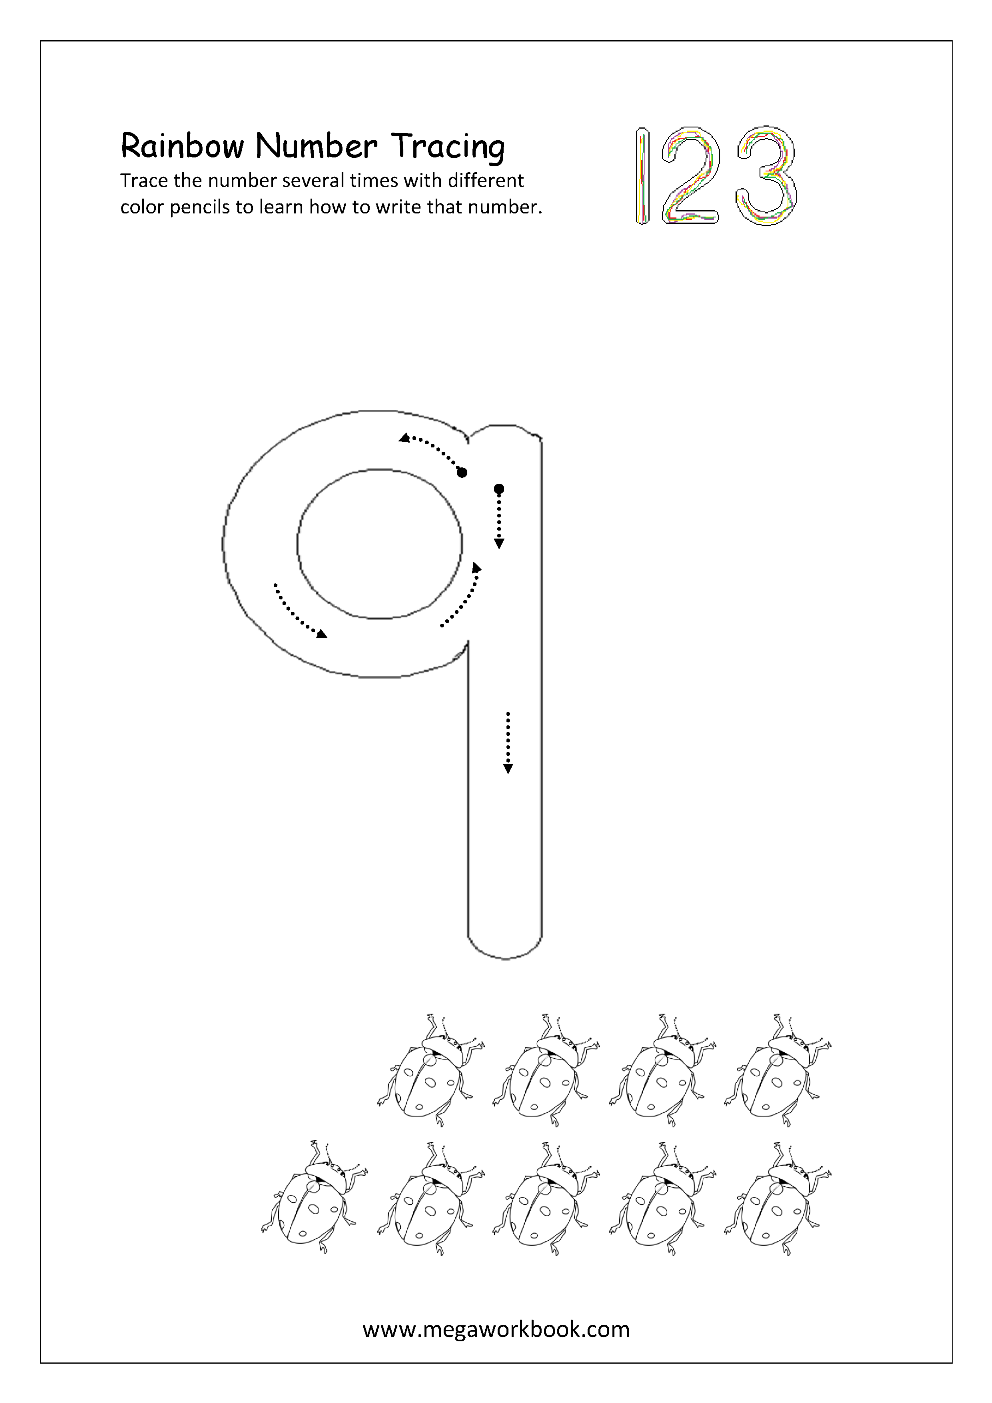 Free Worksheets free tracing numbers 1 10 worksheets : Worksheet. Tracing Number 9. Yaqutlab Free Worksheet